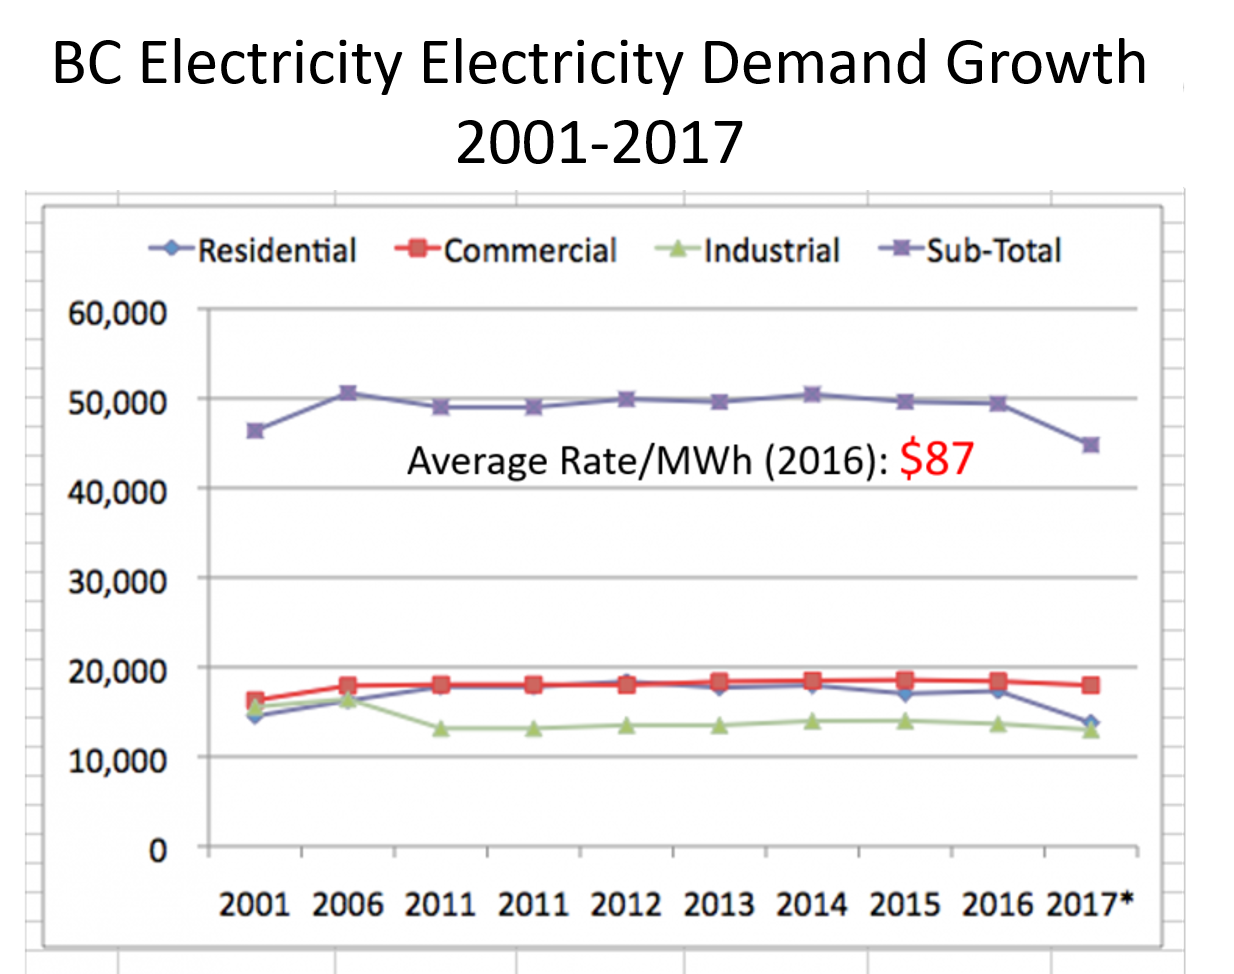 BC Growth in Electricity Demand 2001-2017 - Eoin Finn/My Sea to Sky